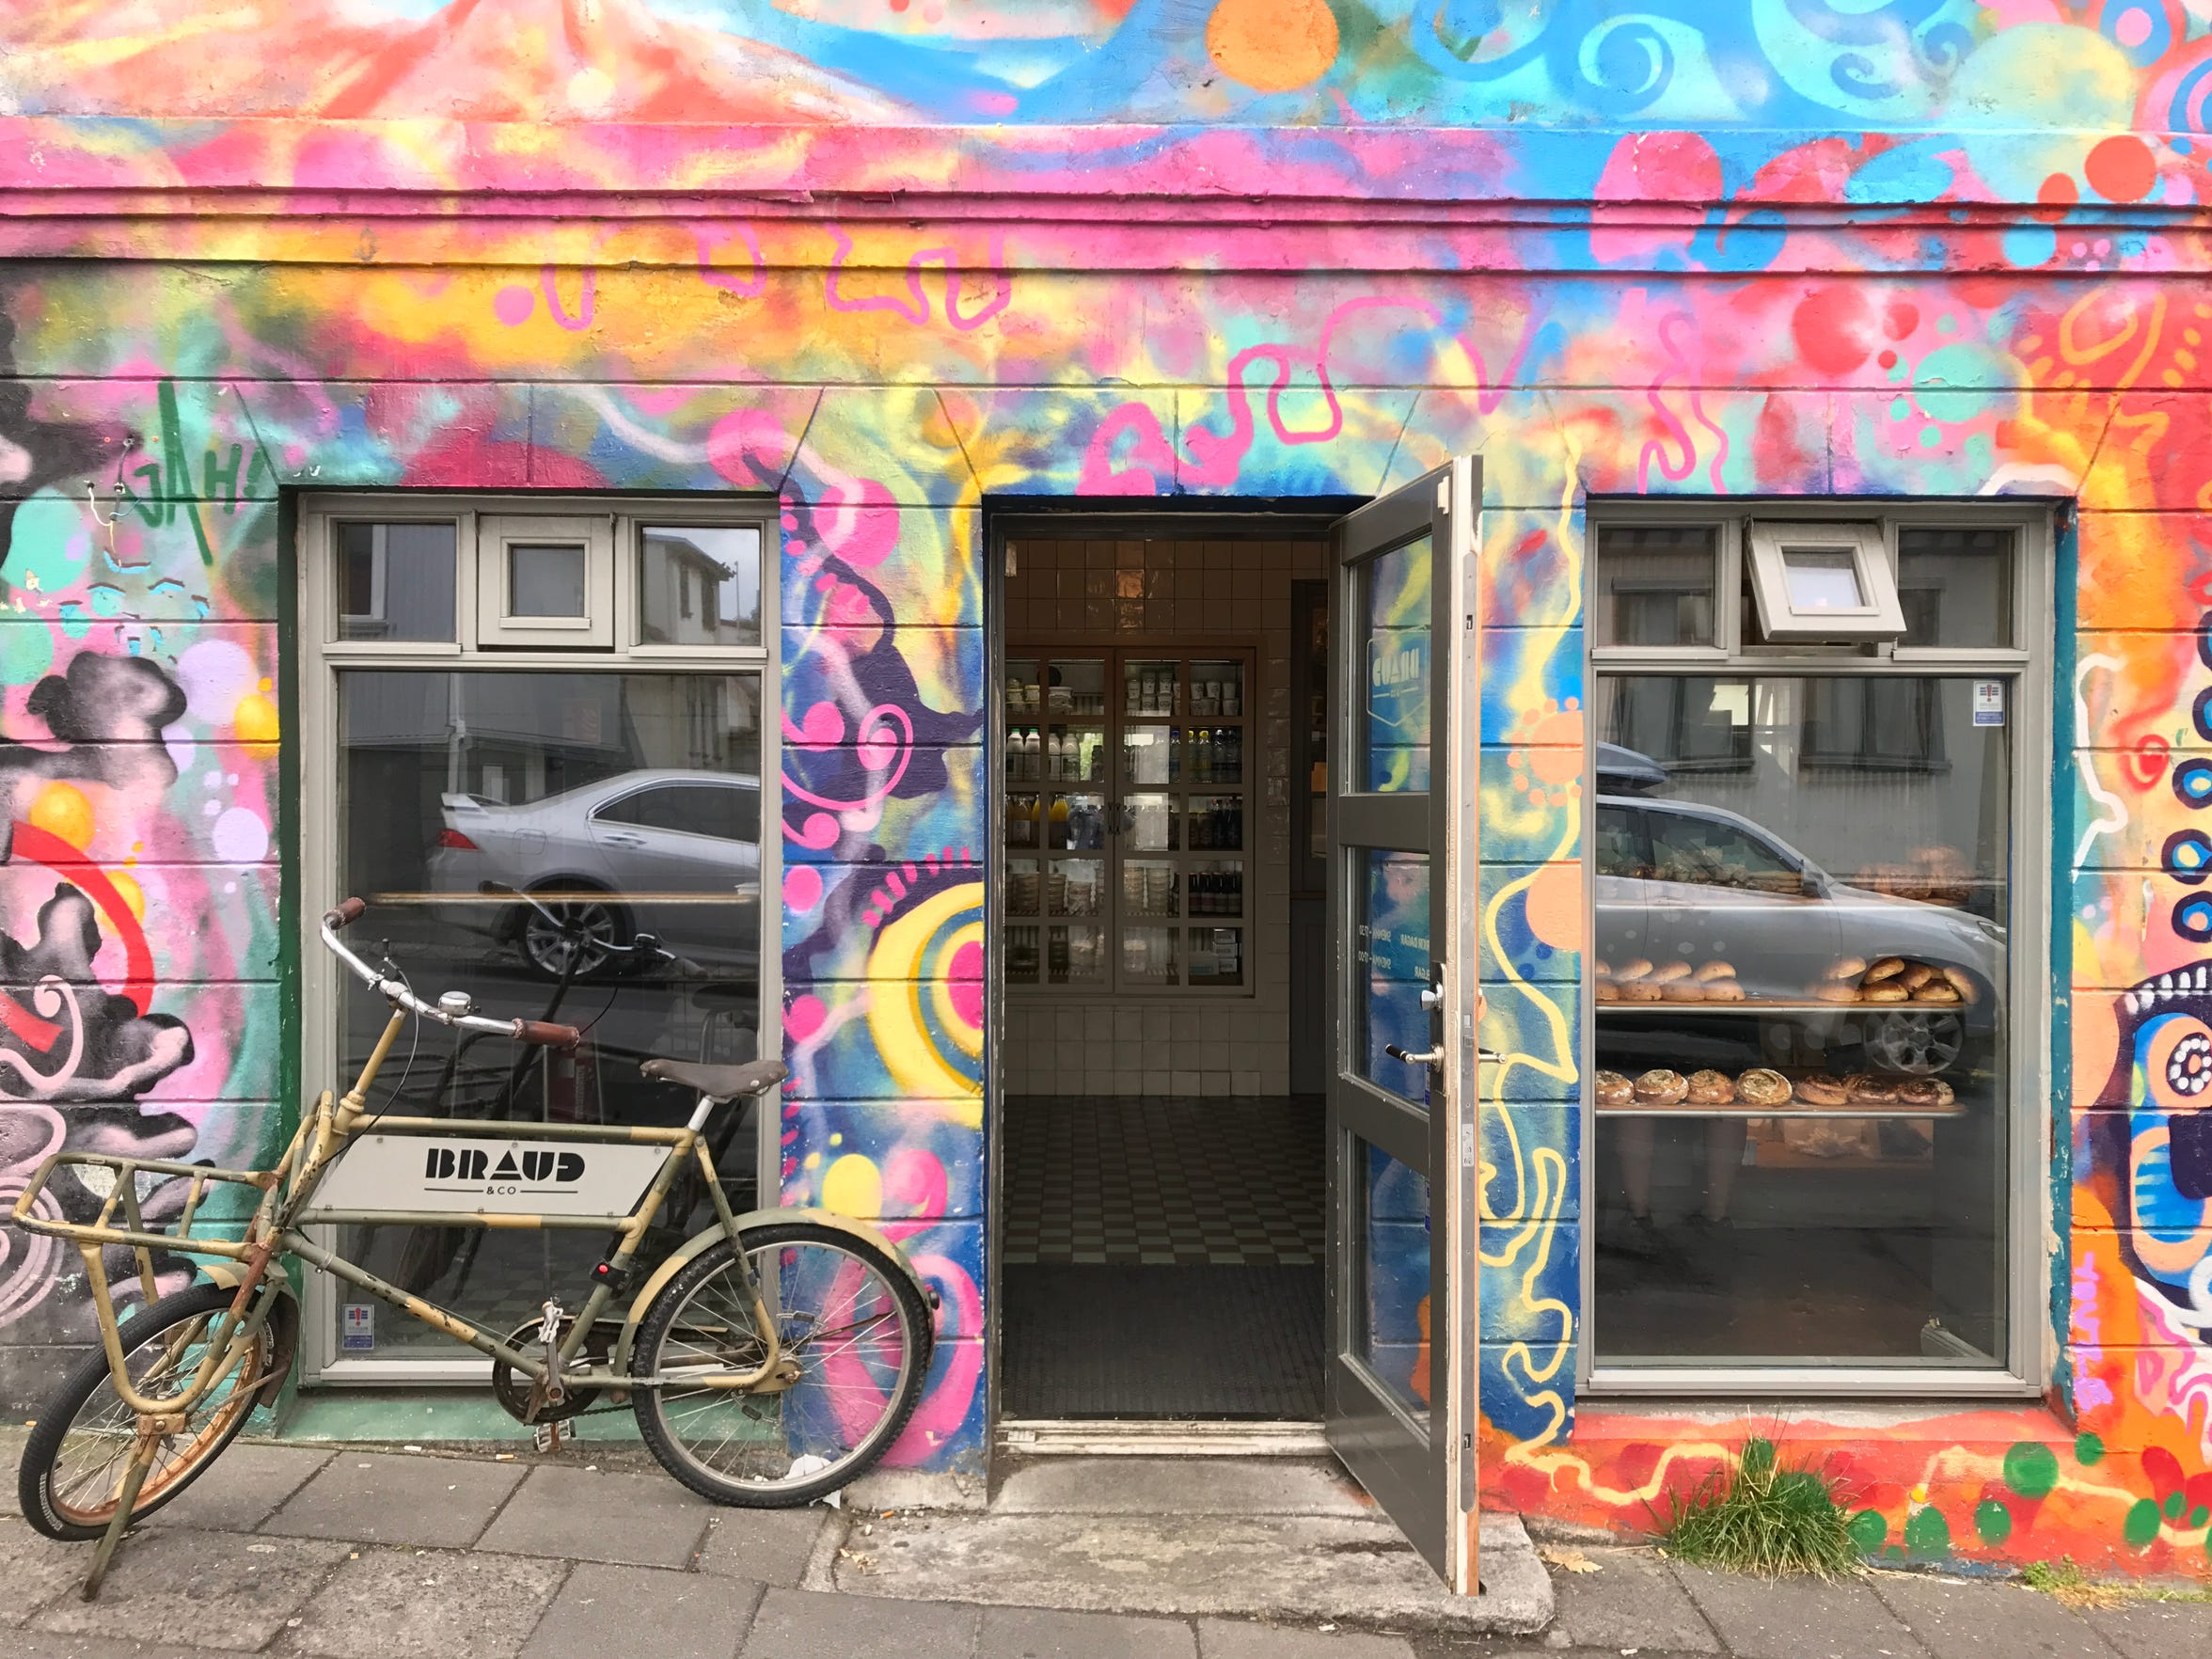 A colorful bakery in Reykjavik makes the pastries even more inviting. makes the pastries even more inviting.